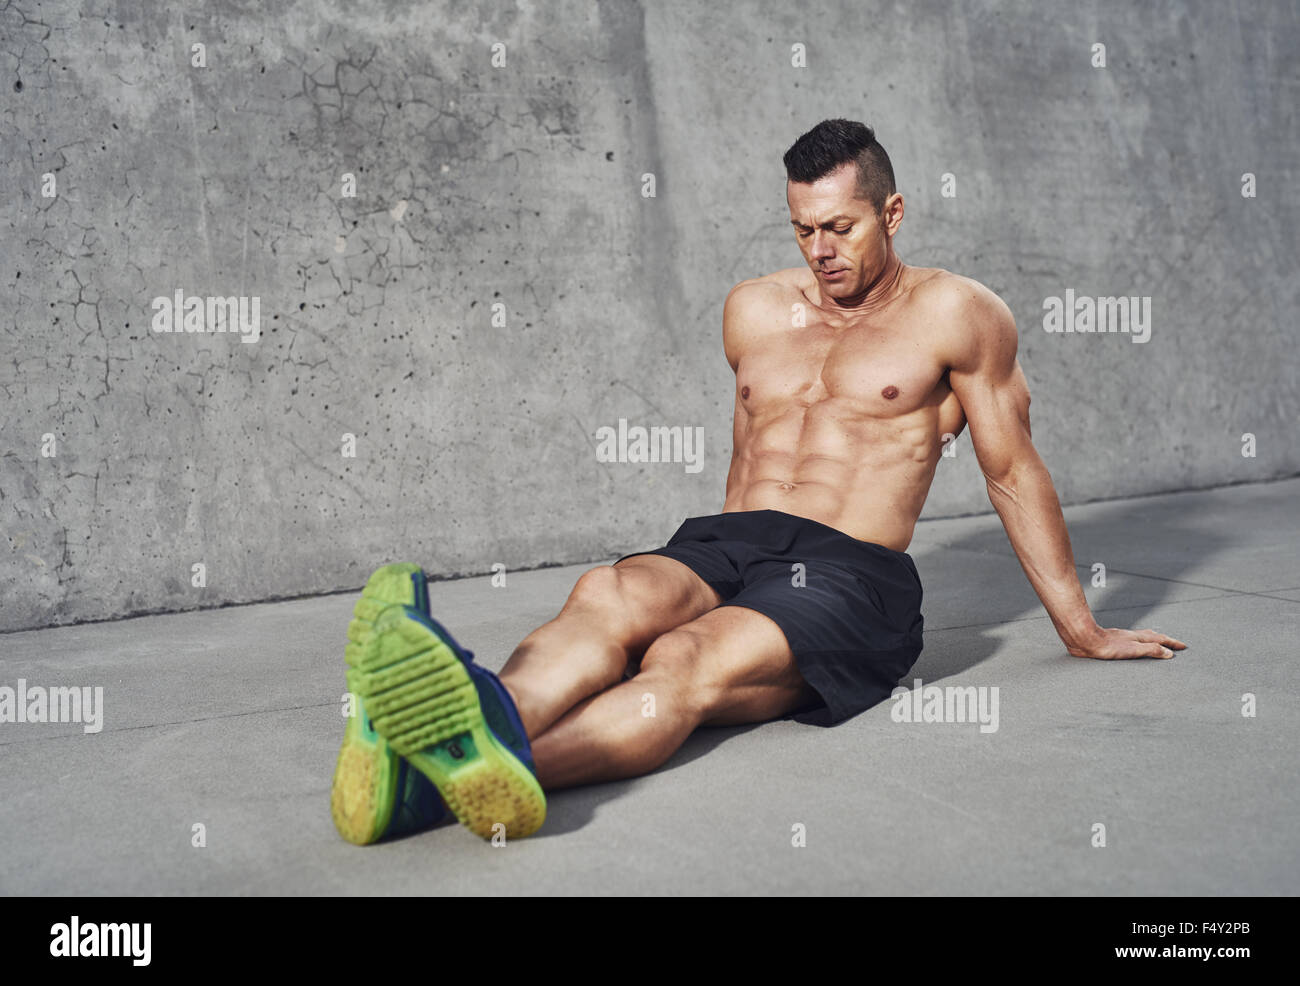 Muscular man relaxing after workout, while wearing no shirt showing abdominal six pack and looking relaxed - Stock Image